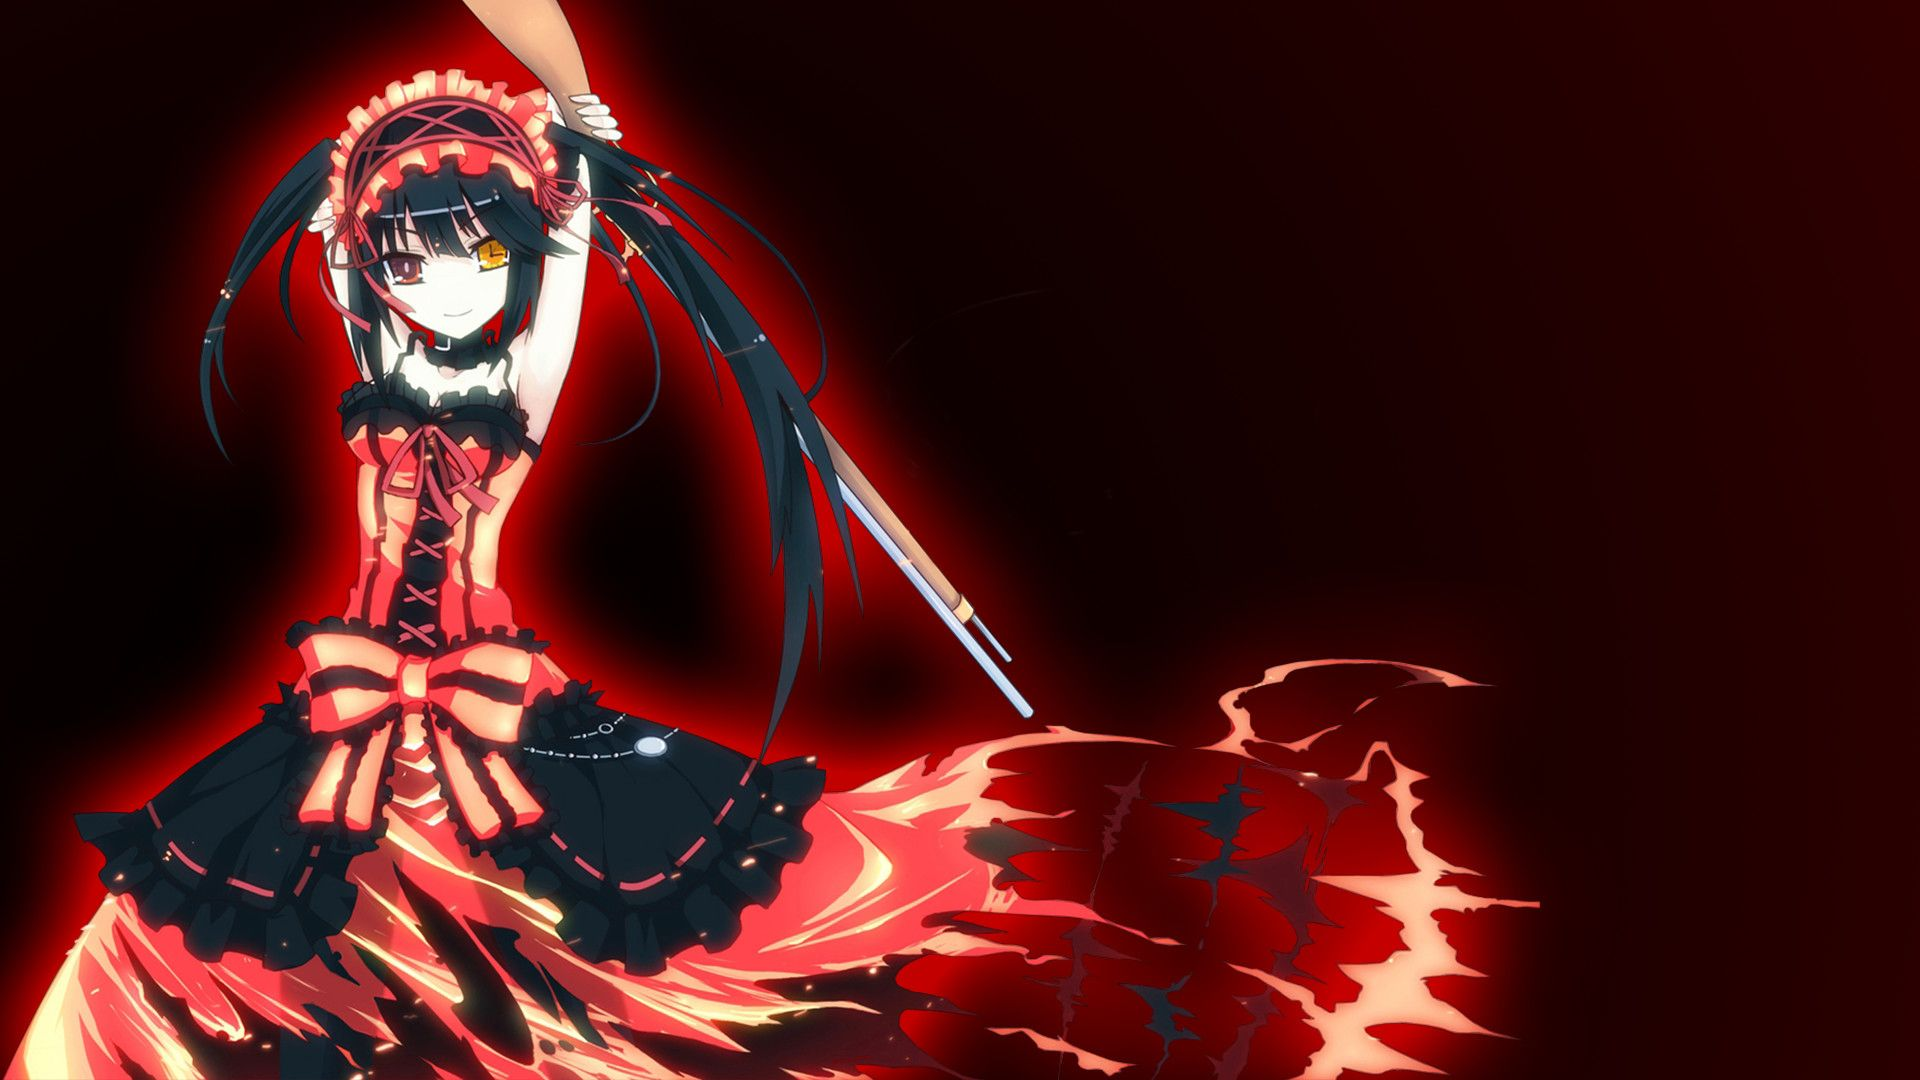 Dark Red Anime Wallpapers Top Free Dark Red Anime Backgrounds Wallpaperaccess